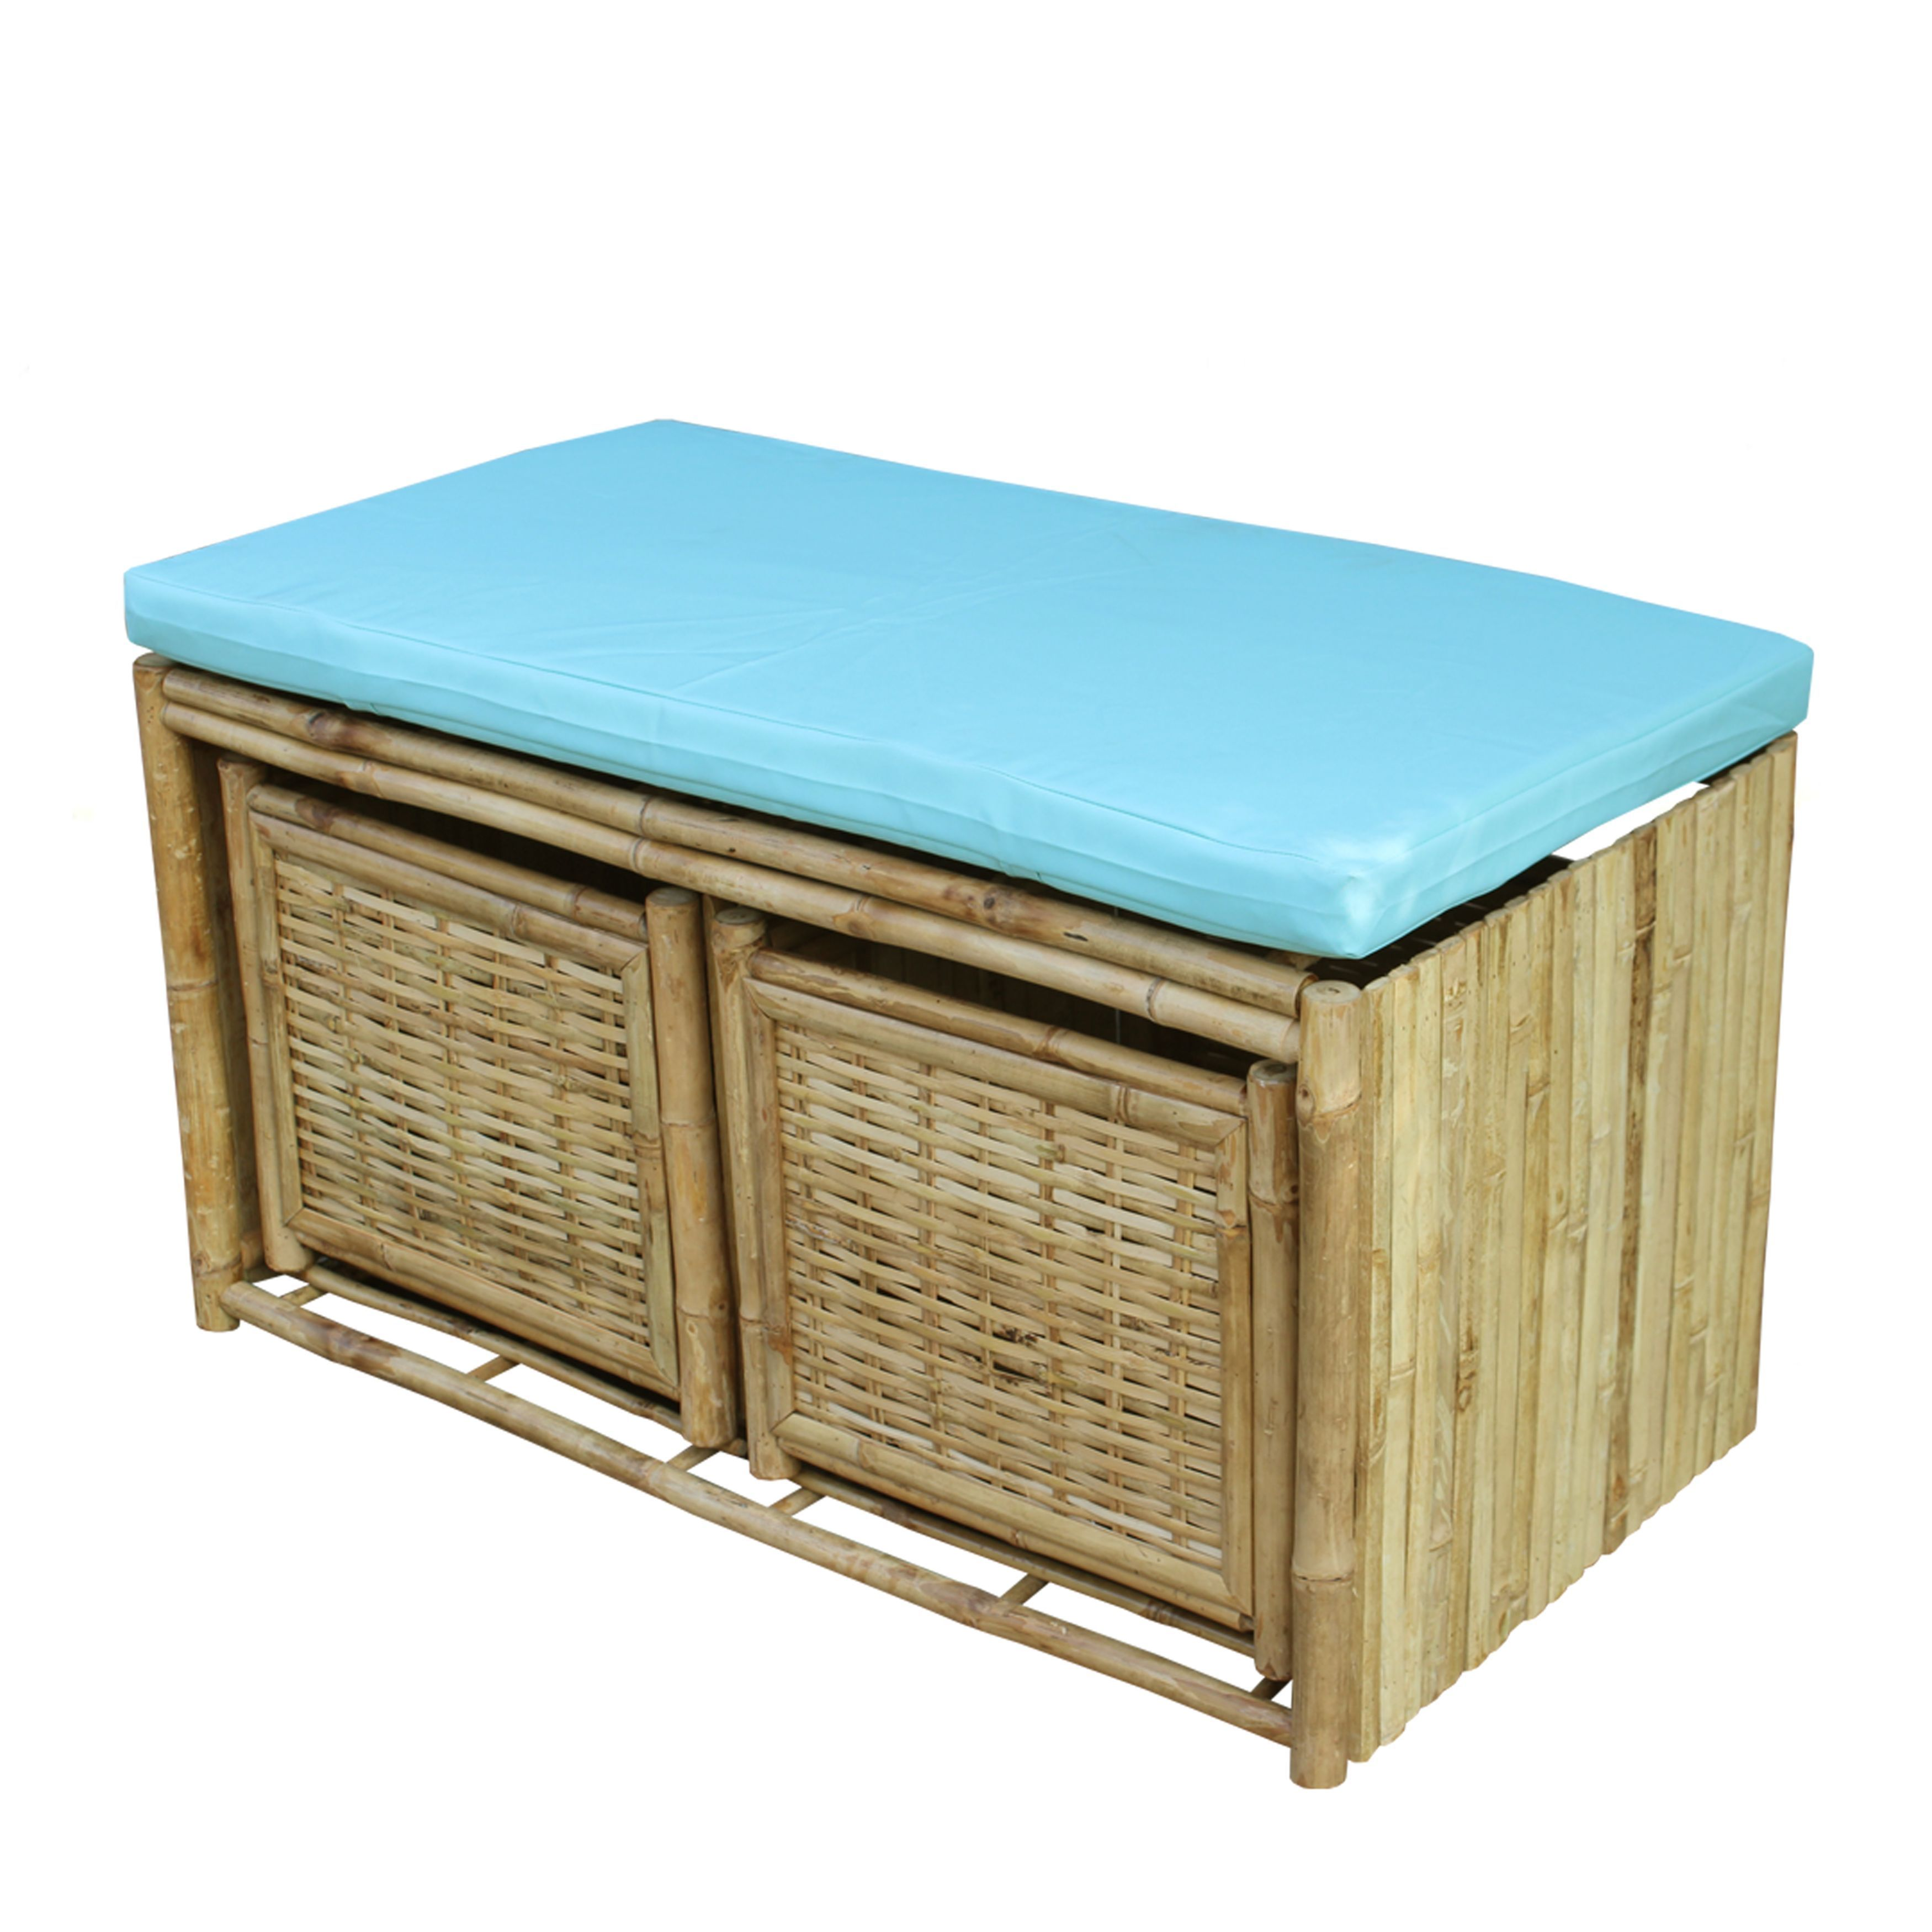 Zew Hand-crafted Bamboo Cubby Storage Entryway Bench (Sho...